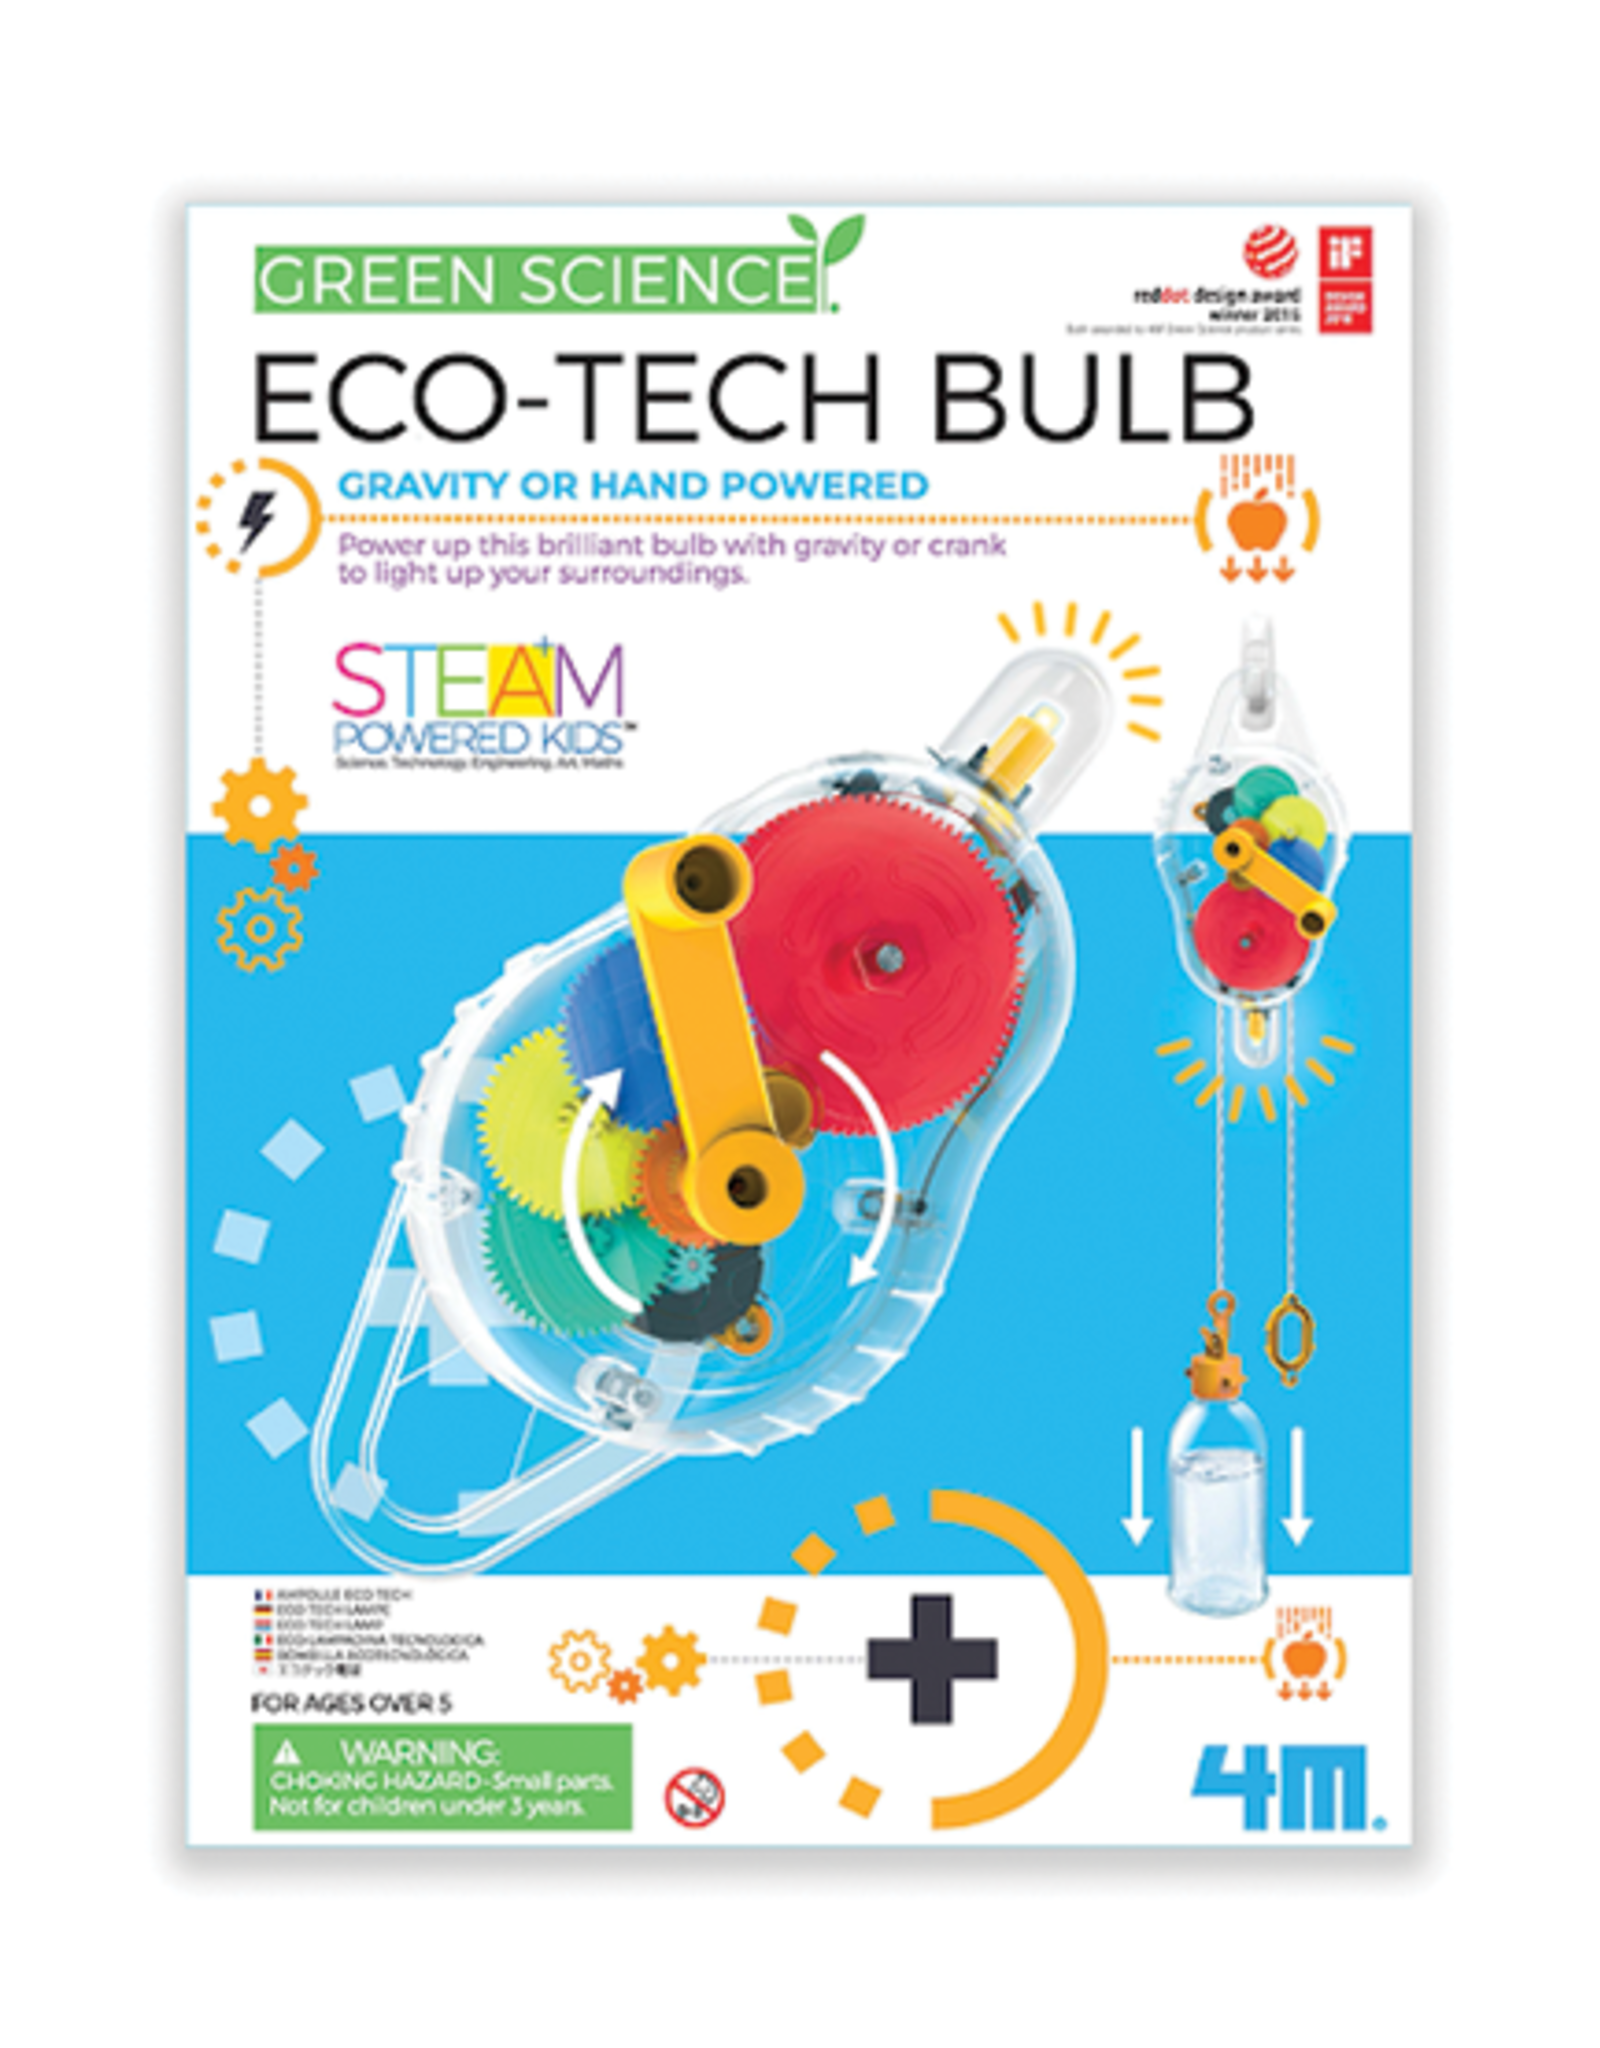 Green Science Green Science Eco Tech Bulb